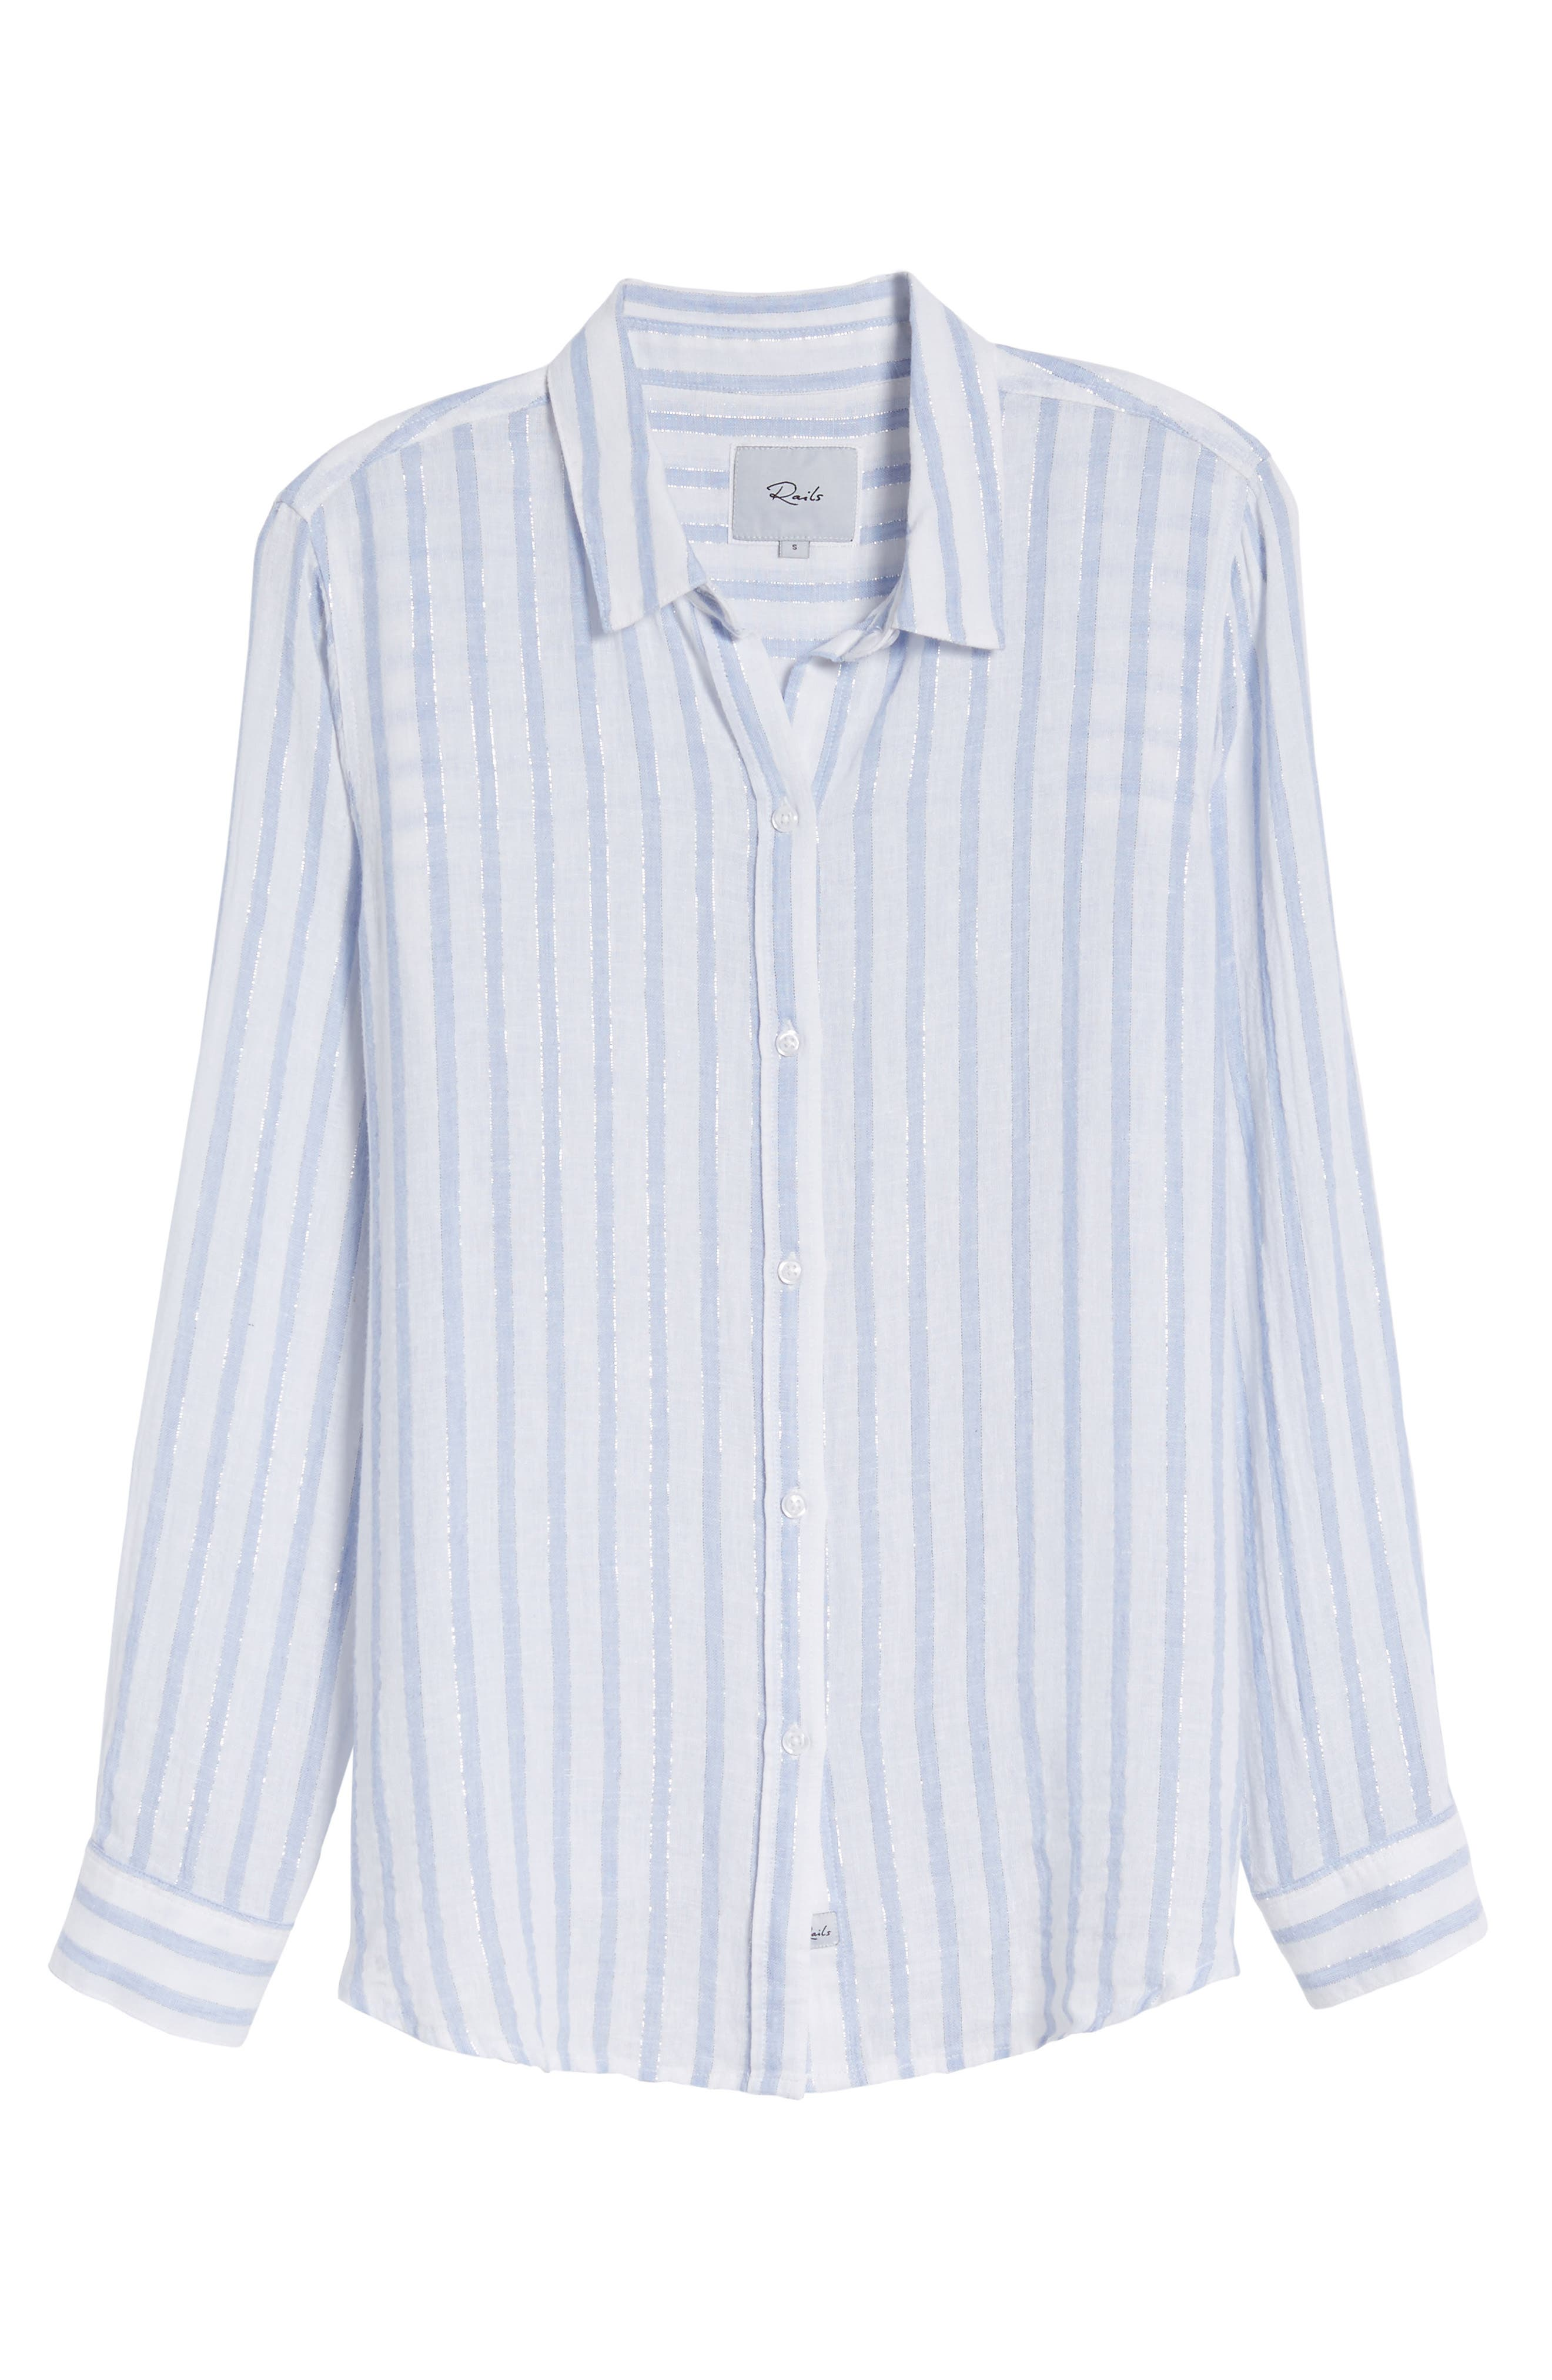 Sydney Vertical Shimmer Stripe Linen Blend Shirt,                             Alternate thumbnail 6, color,                             473